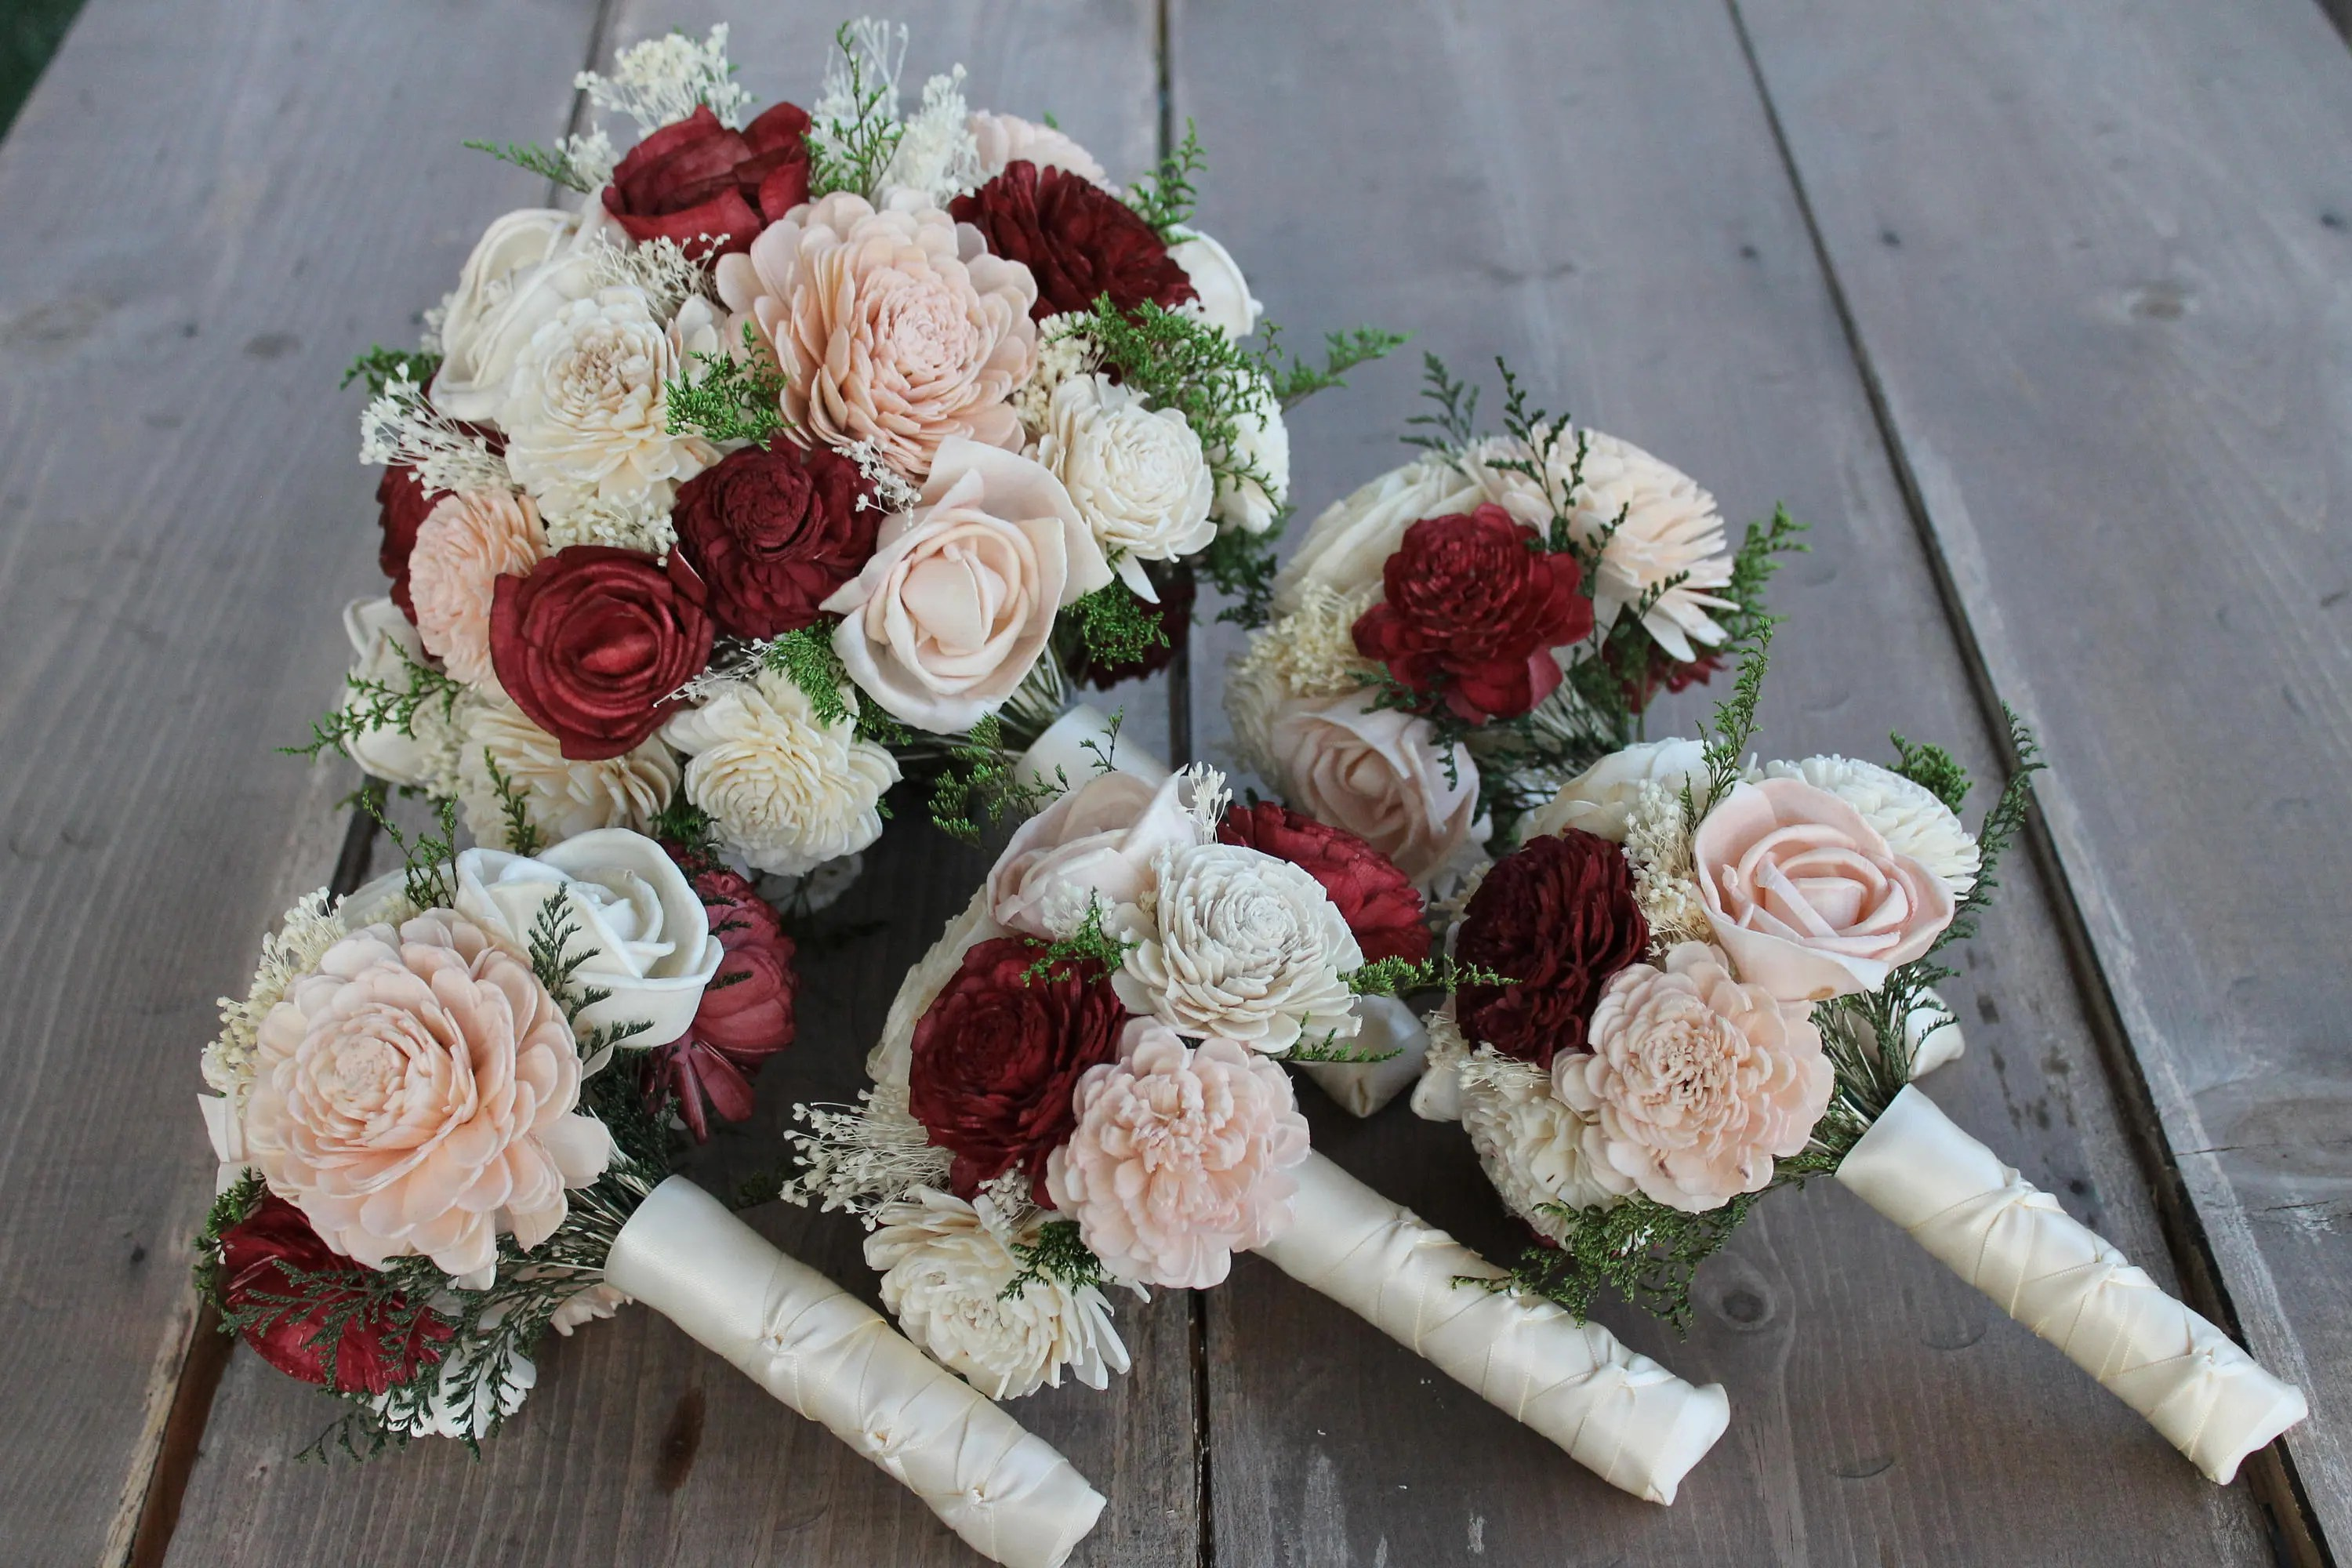 Burgundy Sola Flower Bouquets Burgundy Blush Pink & Cream